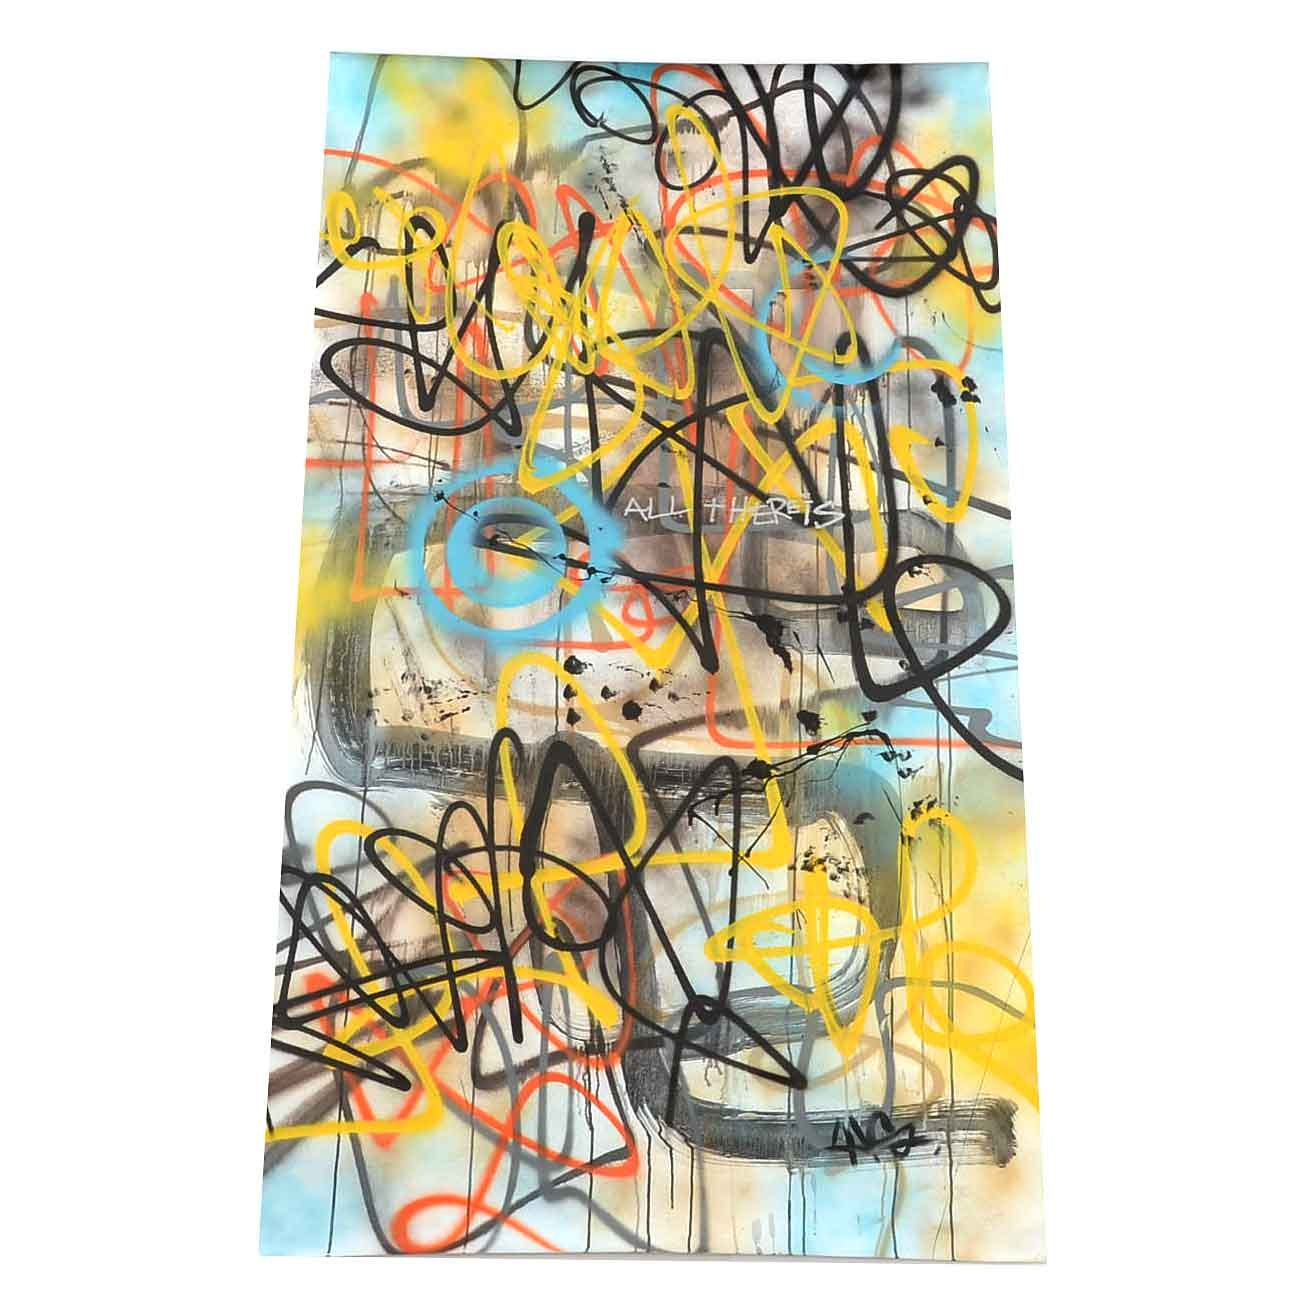 Wall Street Original Mixed Media Street Art on Unstretched Canvas